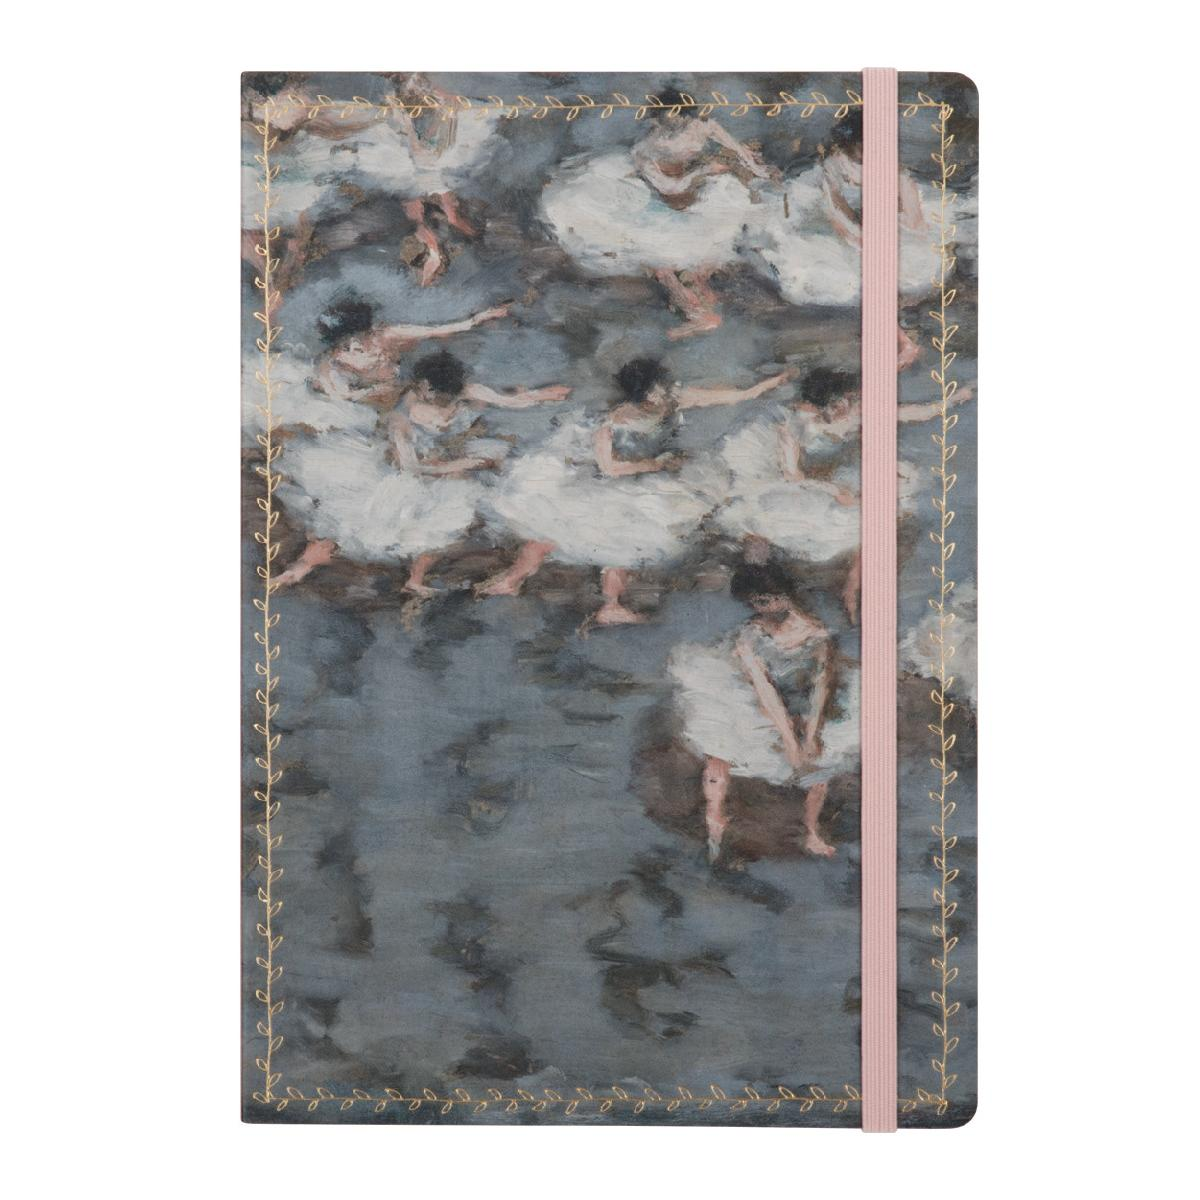 Bonnard Ballet Dancers Gilded Journal